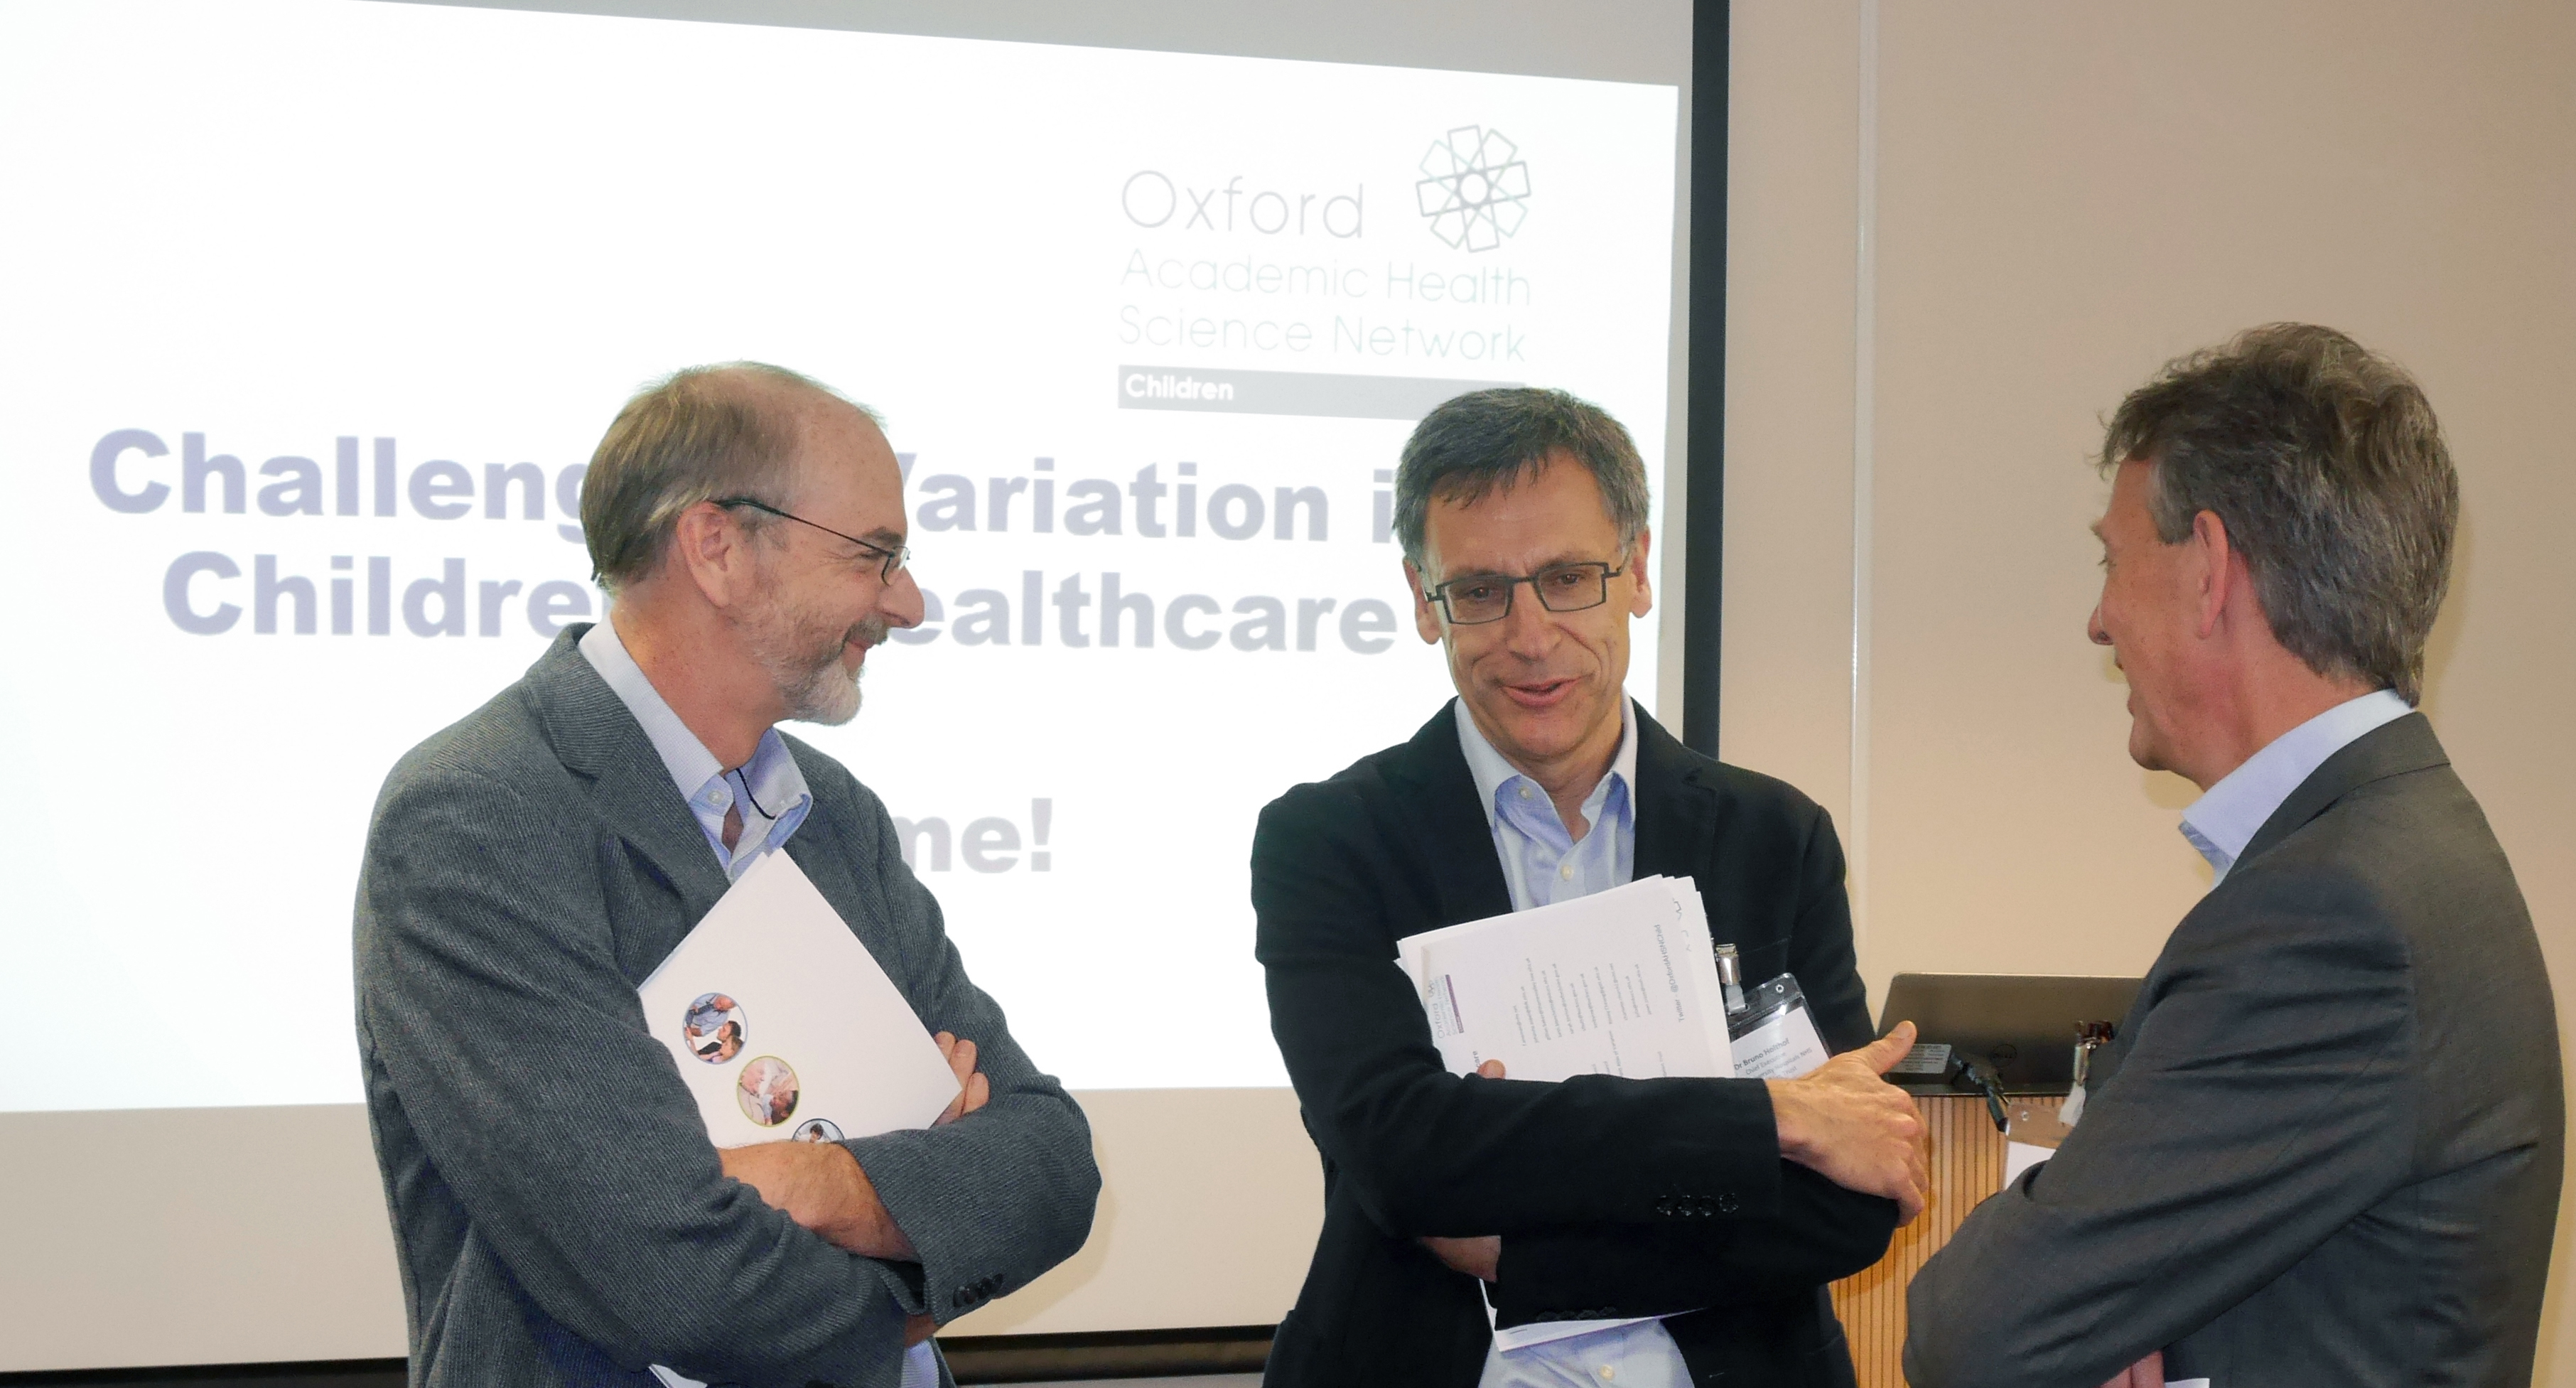 Andrew Pollard, Bruno Holthof, Gary Ford, Challenging variation in children's care